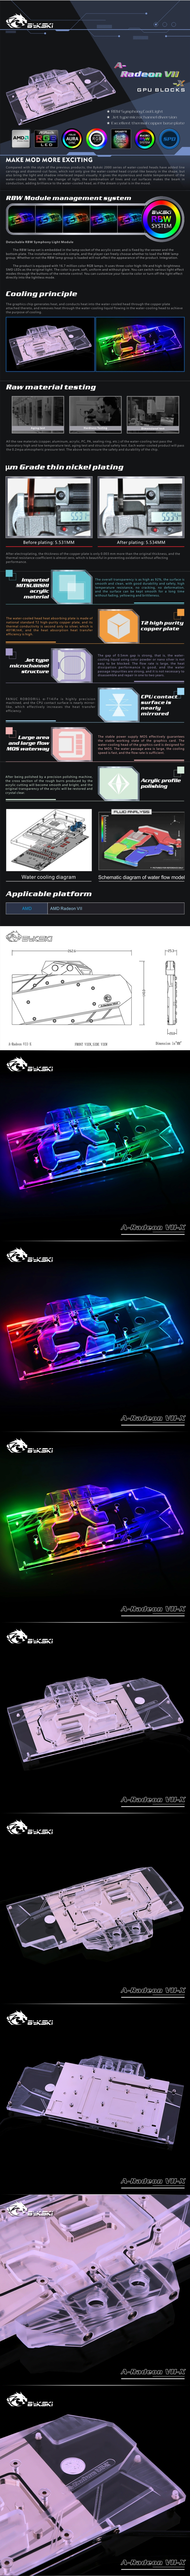 A large marketing image providing additional information about the product Bykski AMD Radeon VII Full Cover RBW GPU Waterblock - Additional alt info not provided